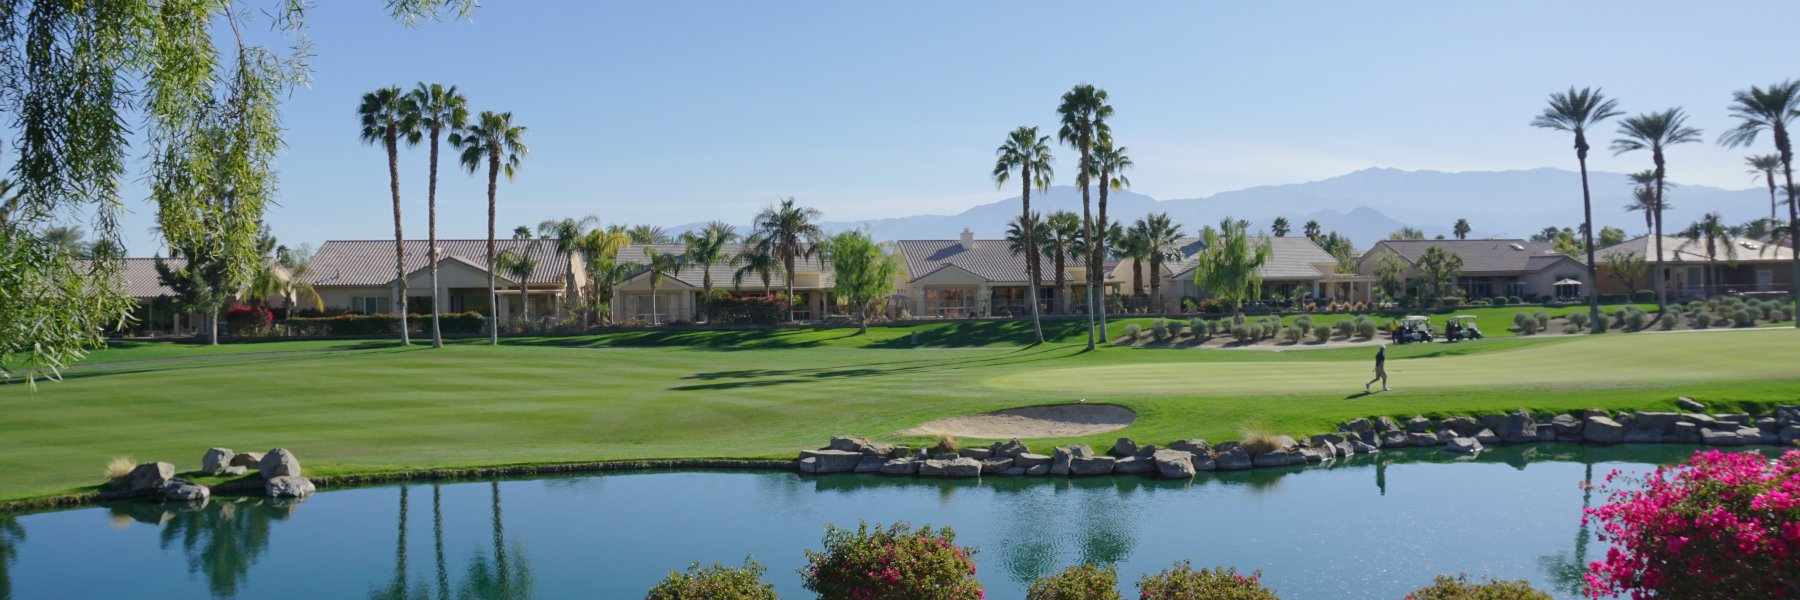 Sun City is a community of homes in Palm Desert California